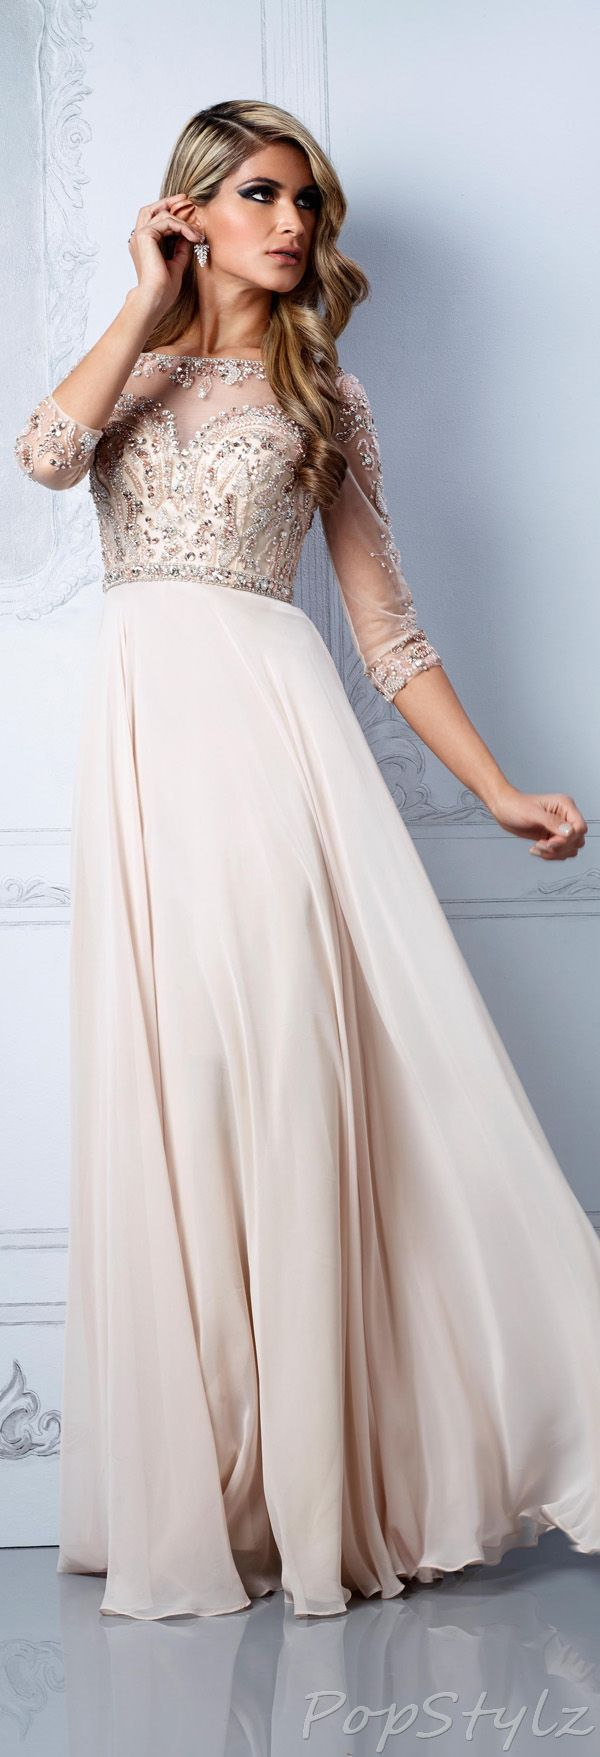 Stunning dress be fancy pinterest woman style clothes and gowns